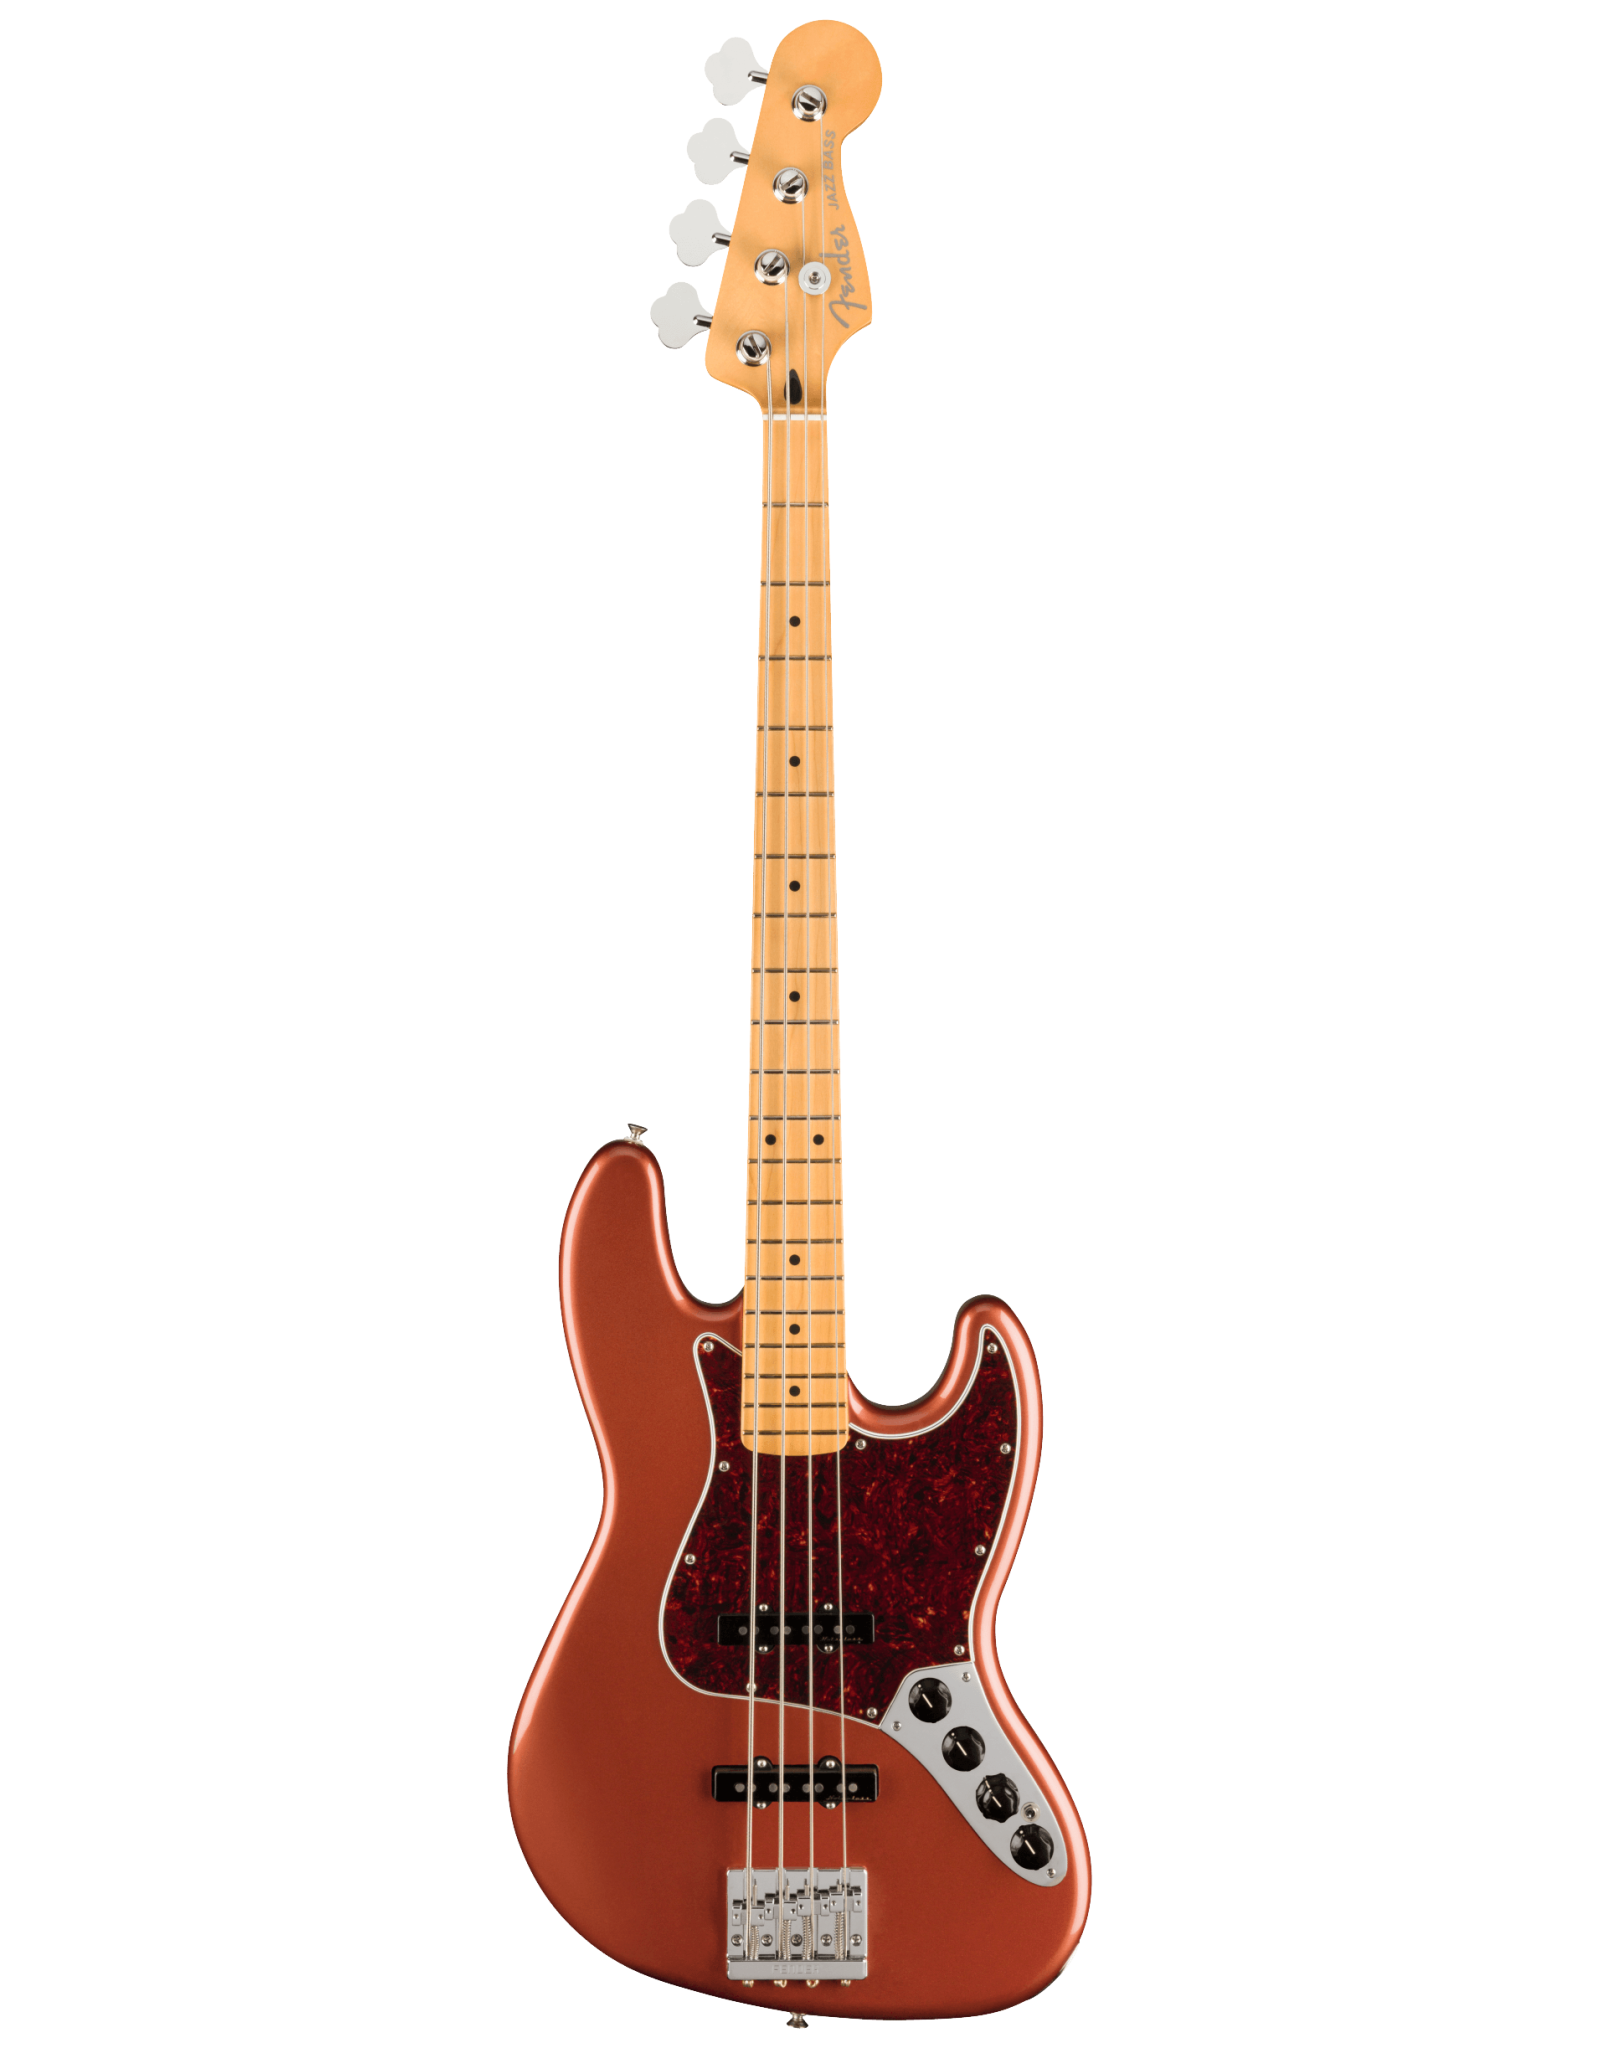 Fender Fender Player Plus Jazz Bass, Maple Fingerboard, Aged Candy Apple Red, w/ Gig Bag